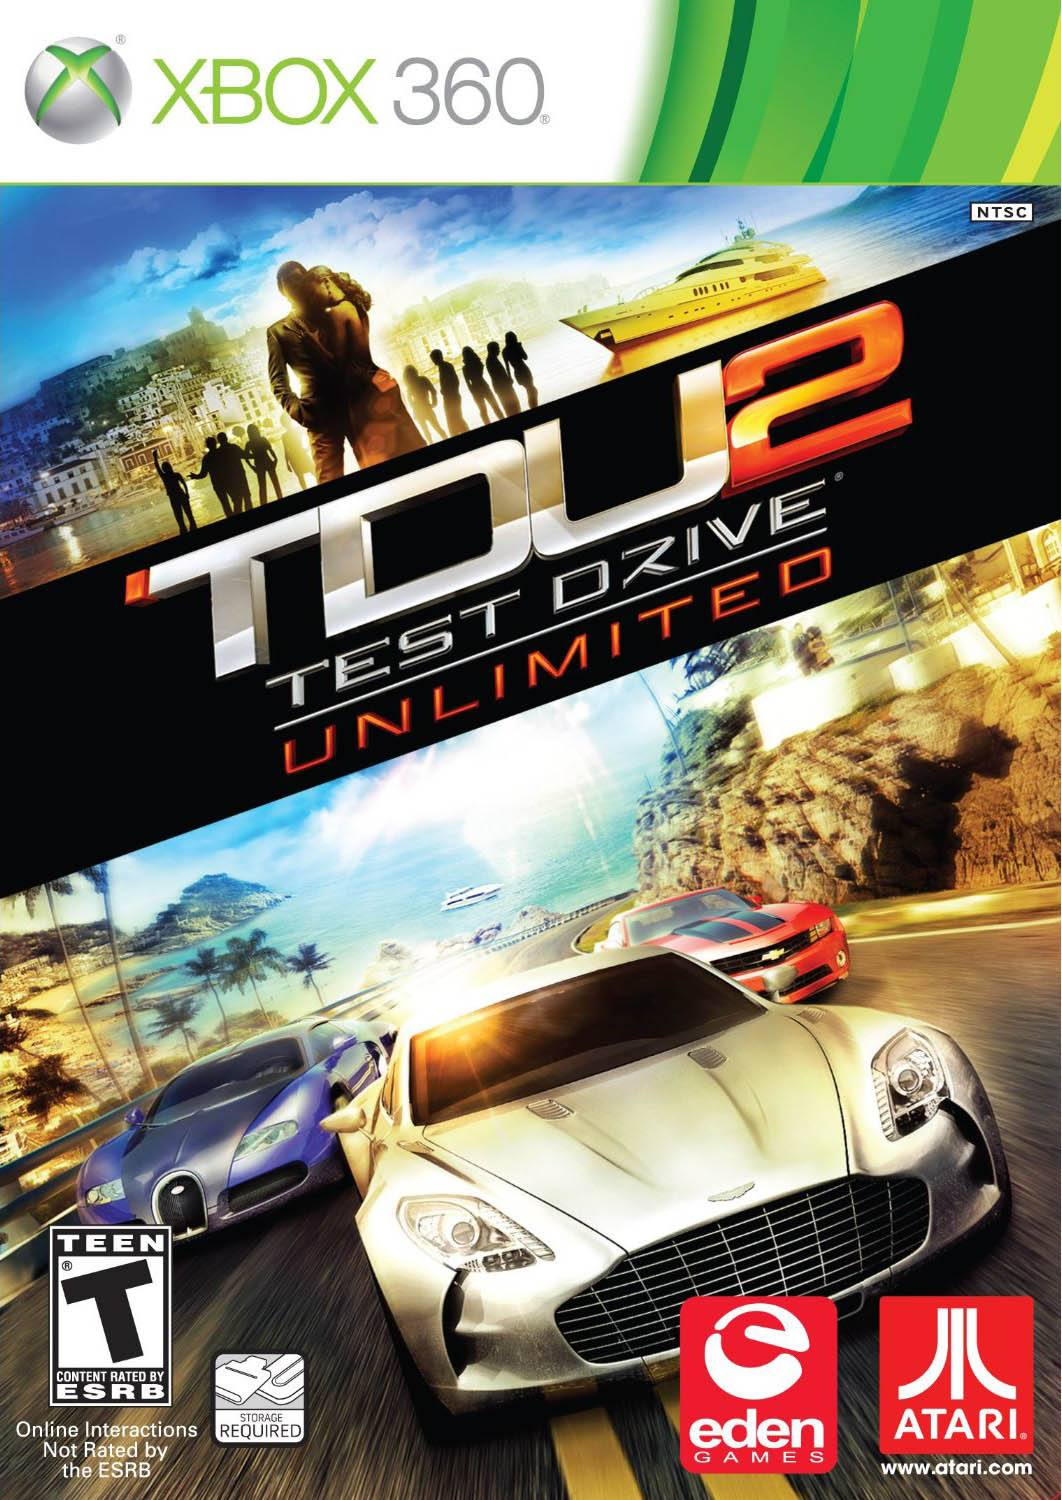 Xbox 360 Test Drive Unlimited 2 | TRANSFER